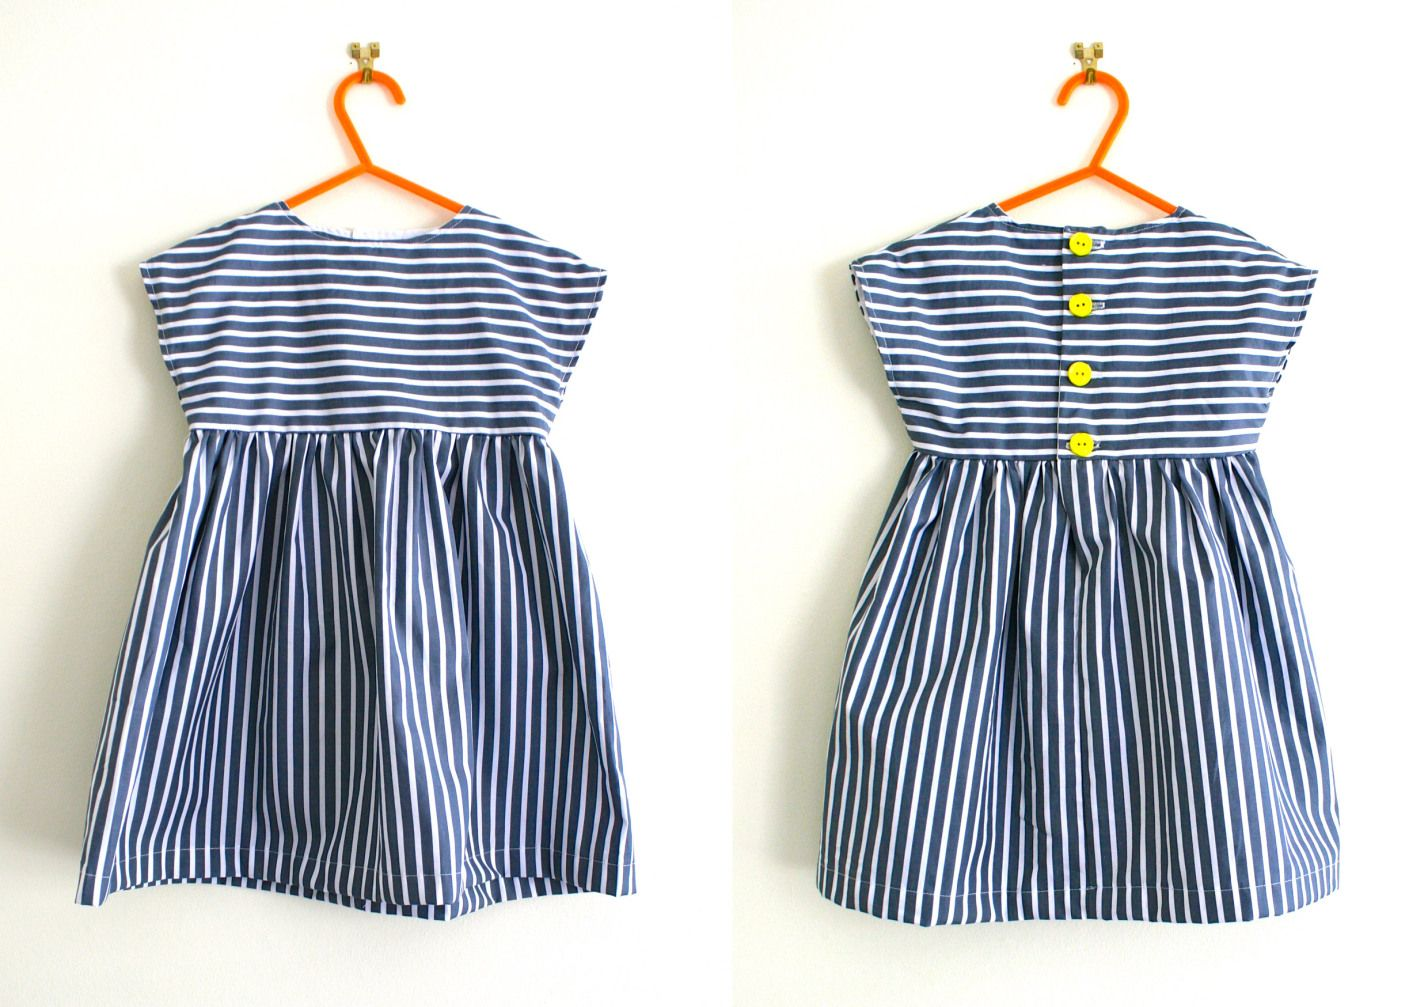 Simple tunic or dress pattern sewing projects sewing ideas and